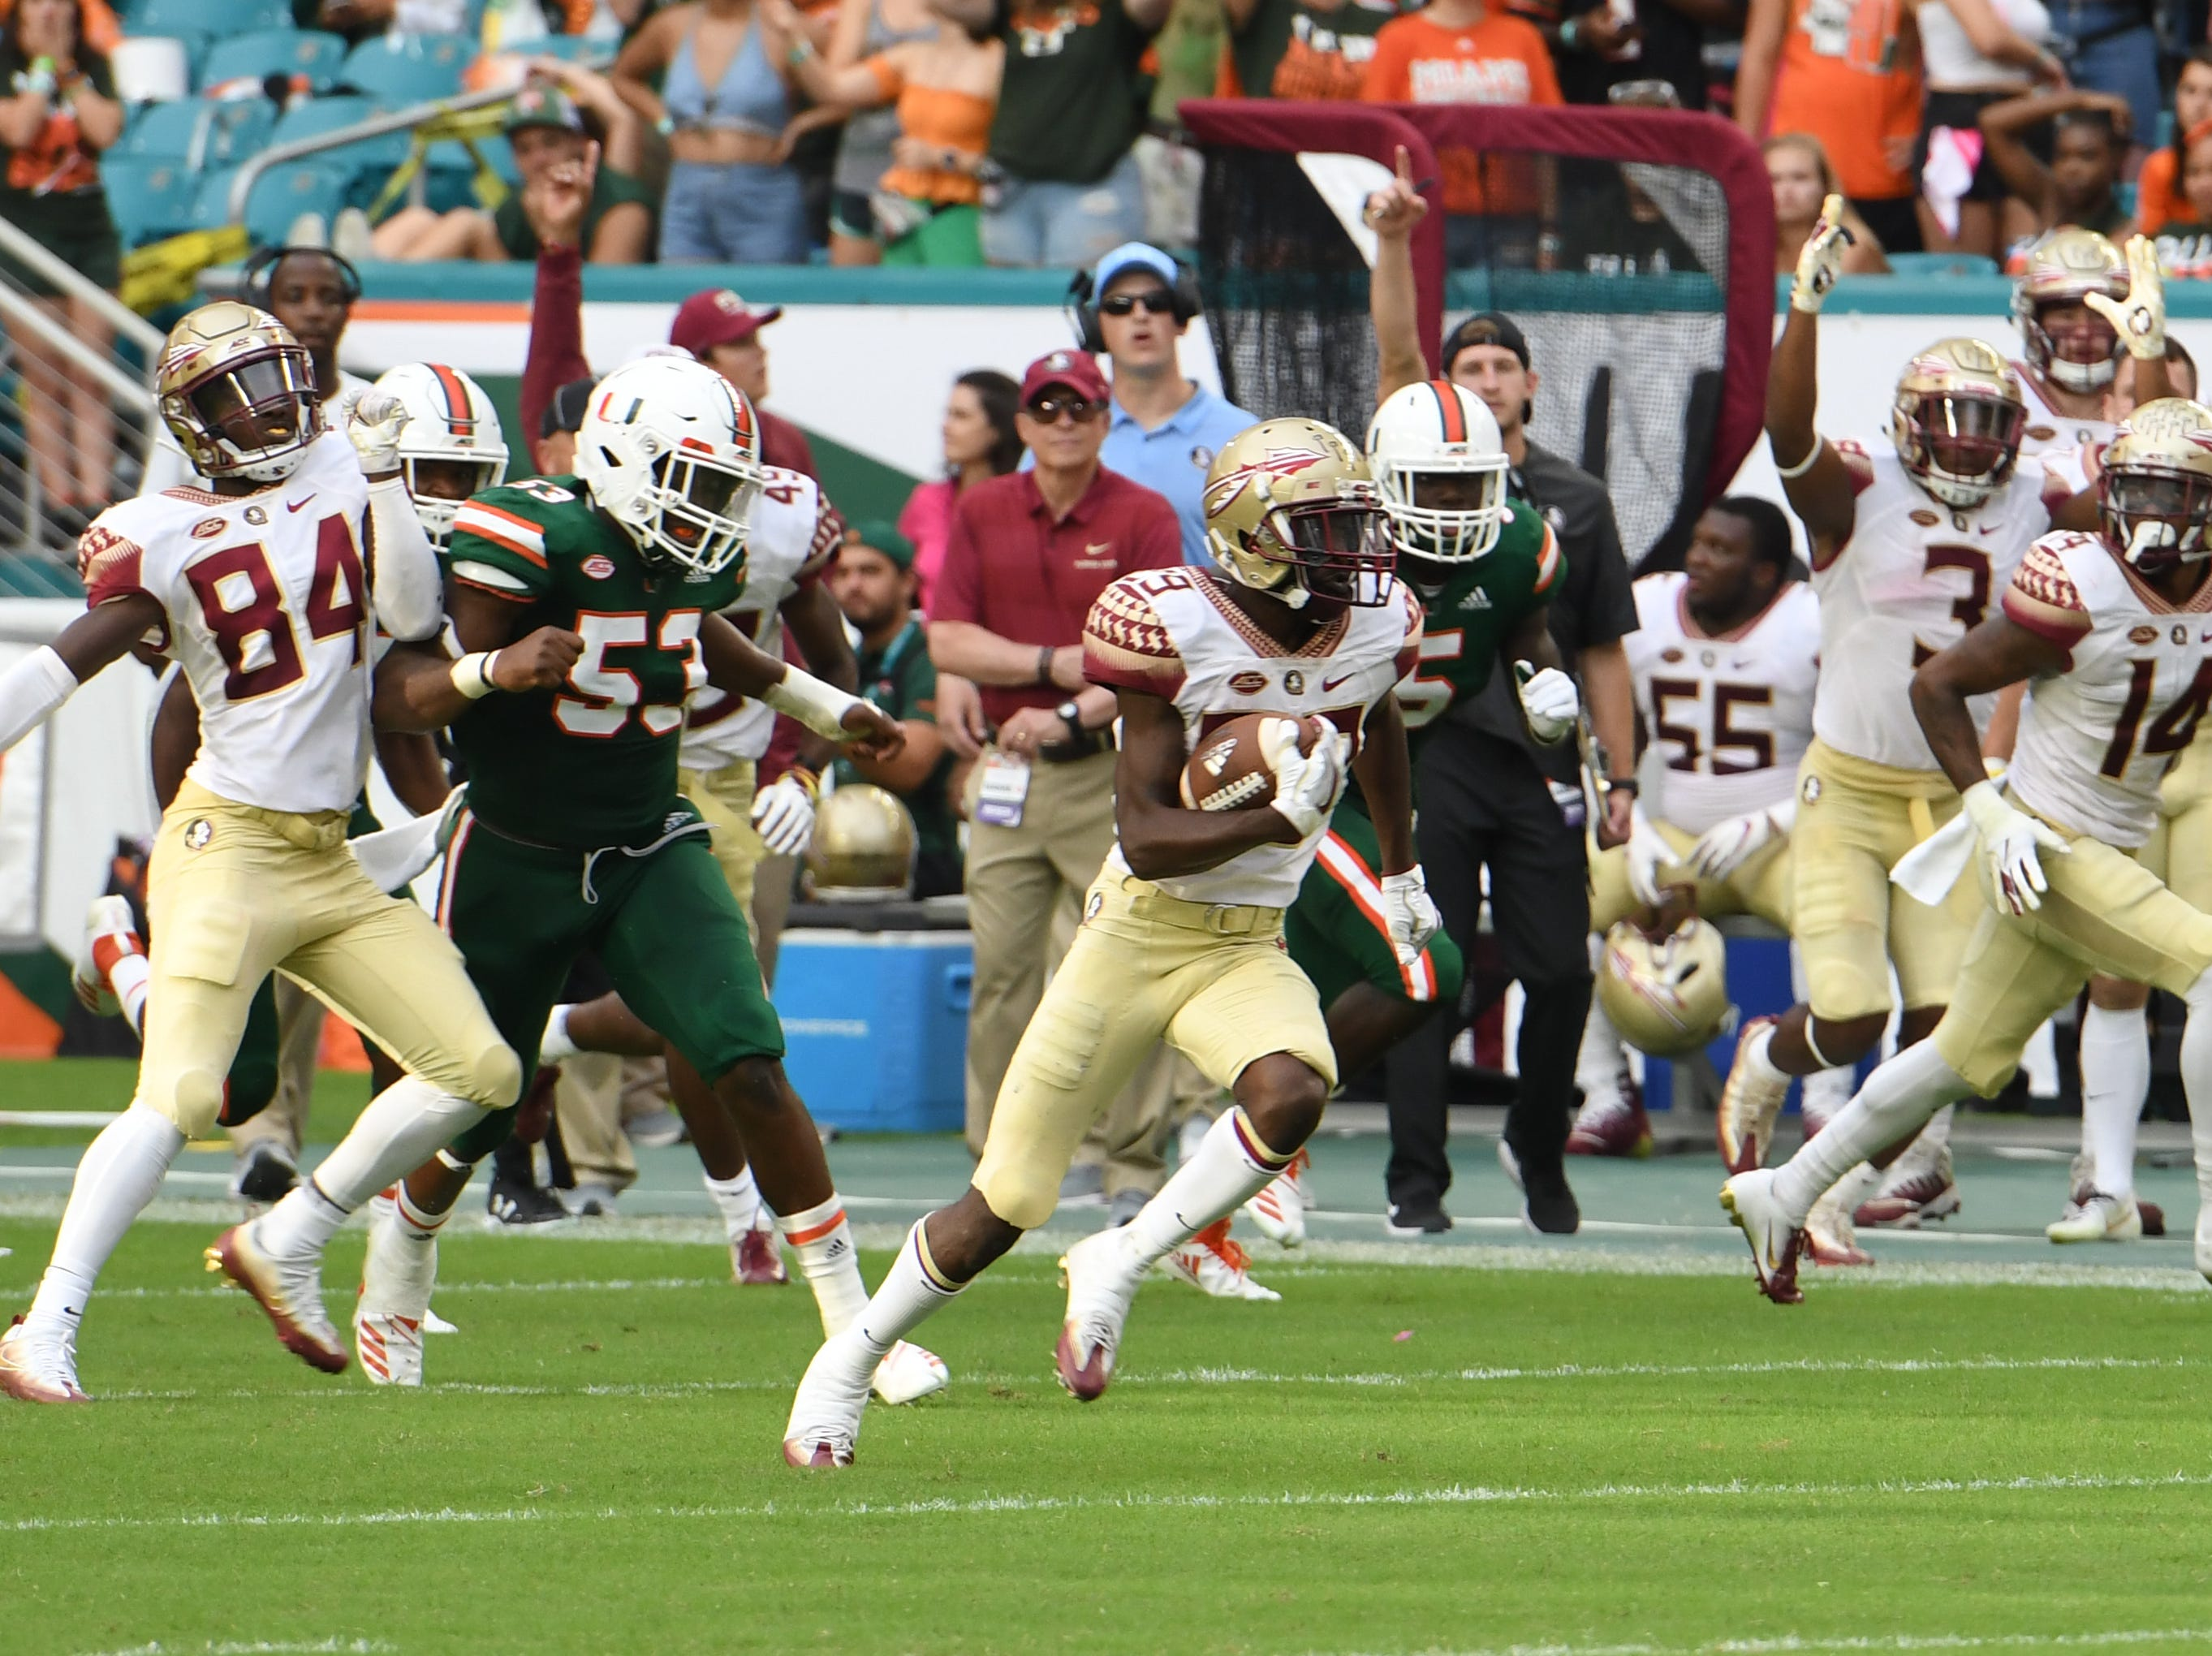 FSU sophomore punt returner DJ Matthews (29) returning a punt for a touchdown in the third quarter of FSU's game against Miami at the Hard Rock Stadium on October 6th 2018.